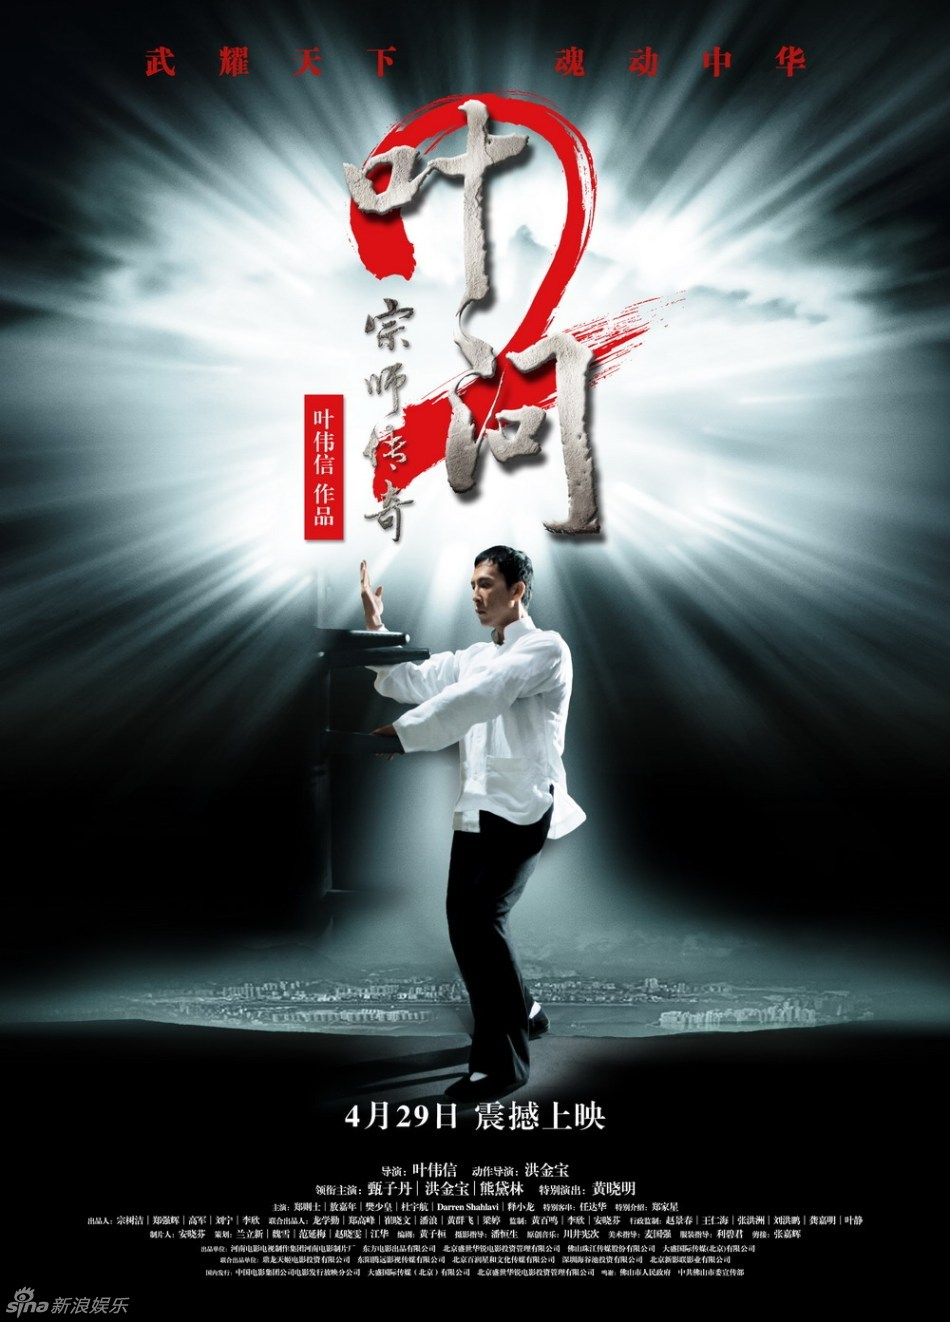 IP MAN IIIp Man 2 Movie